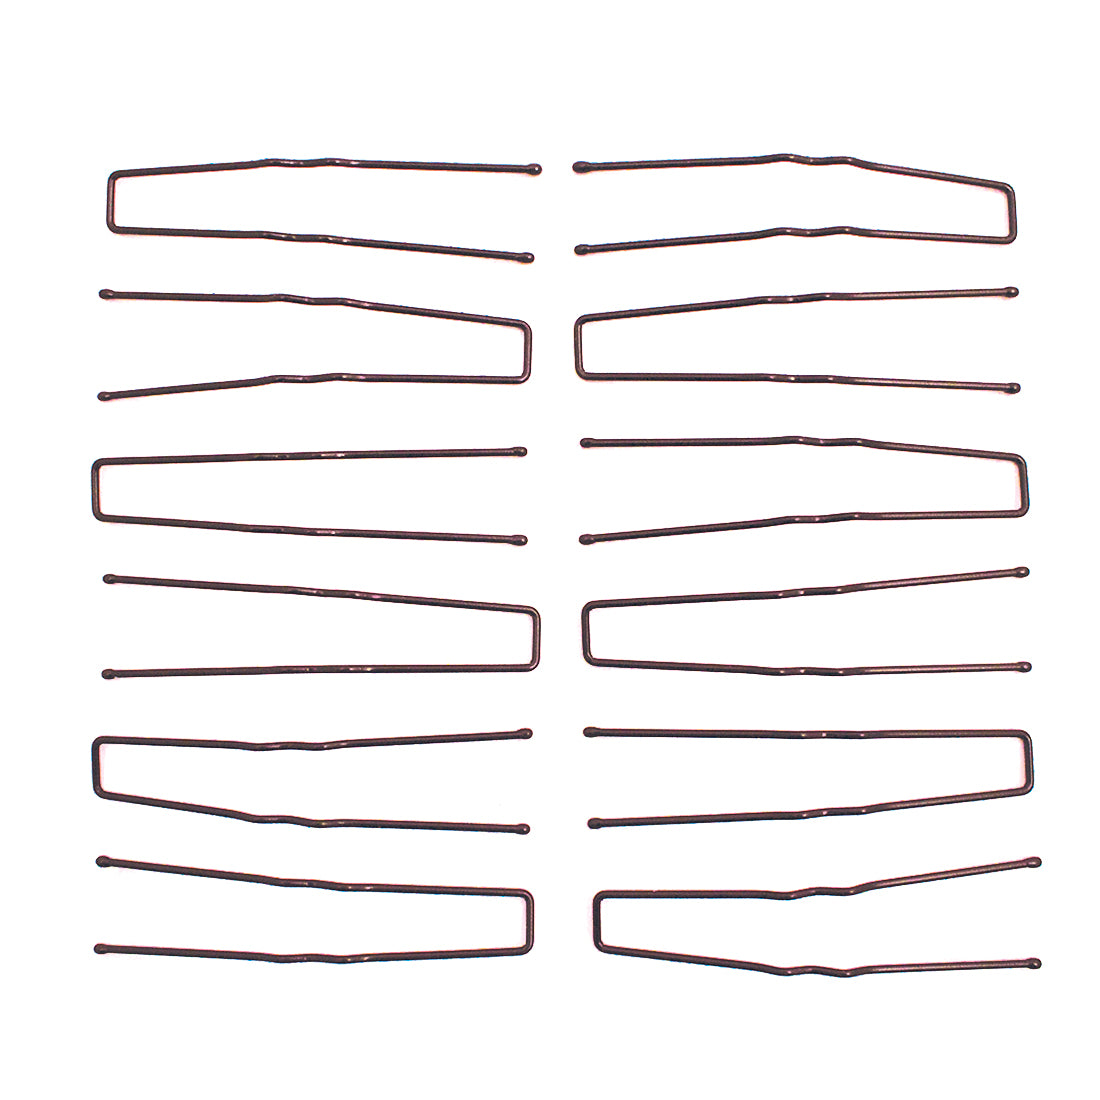 Mia® SqHair Pins - brown color - 12 pieces - designed by #Mia Kaminski of Mia Beauty